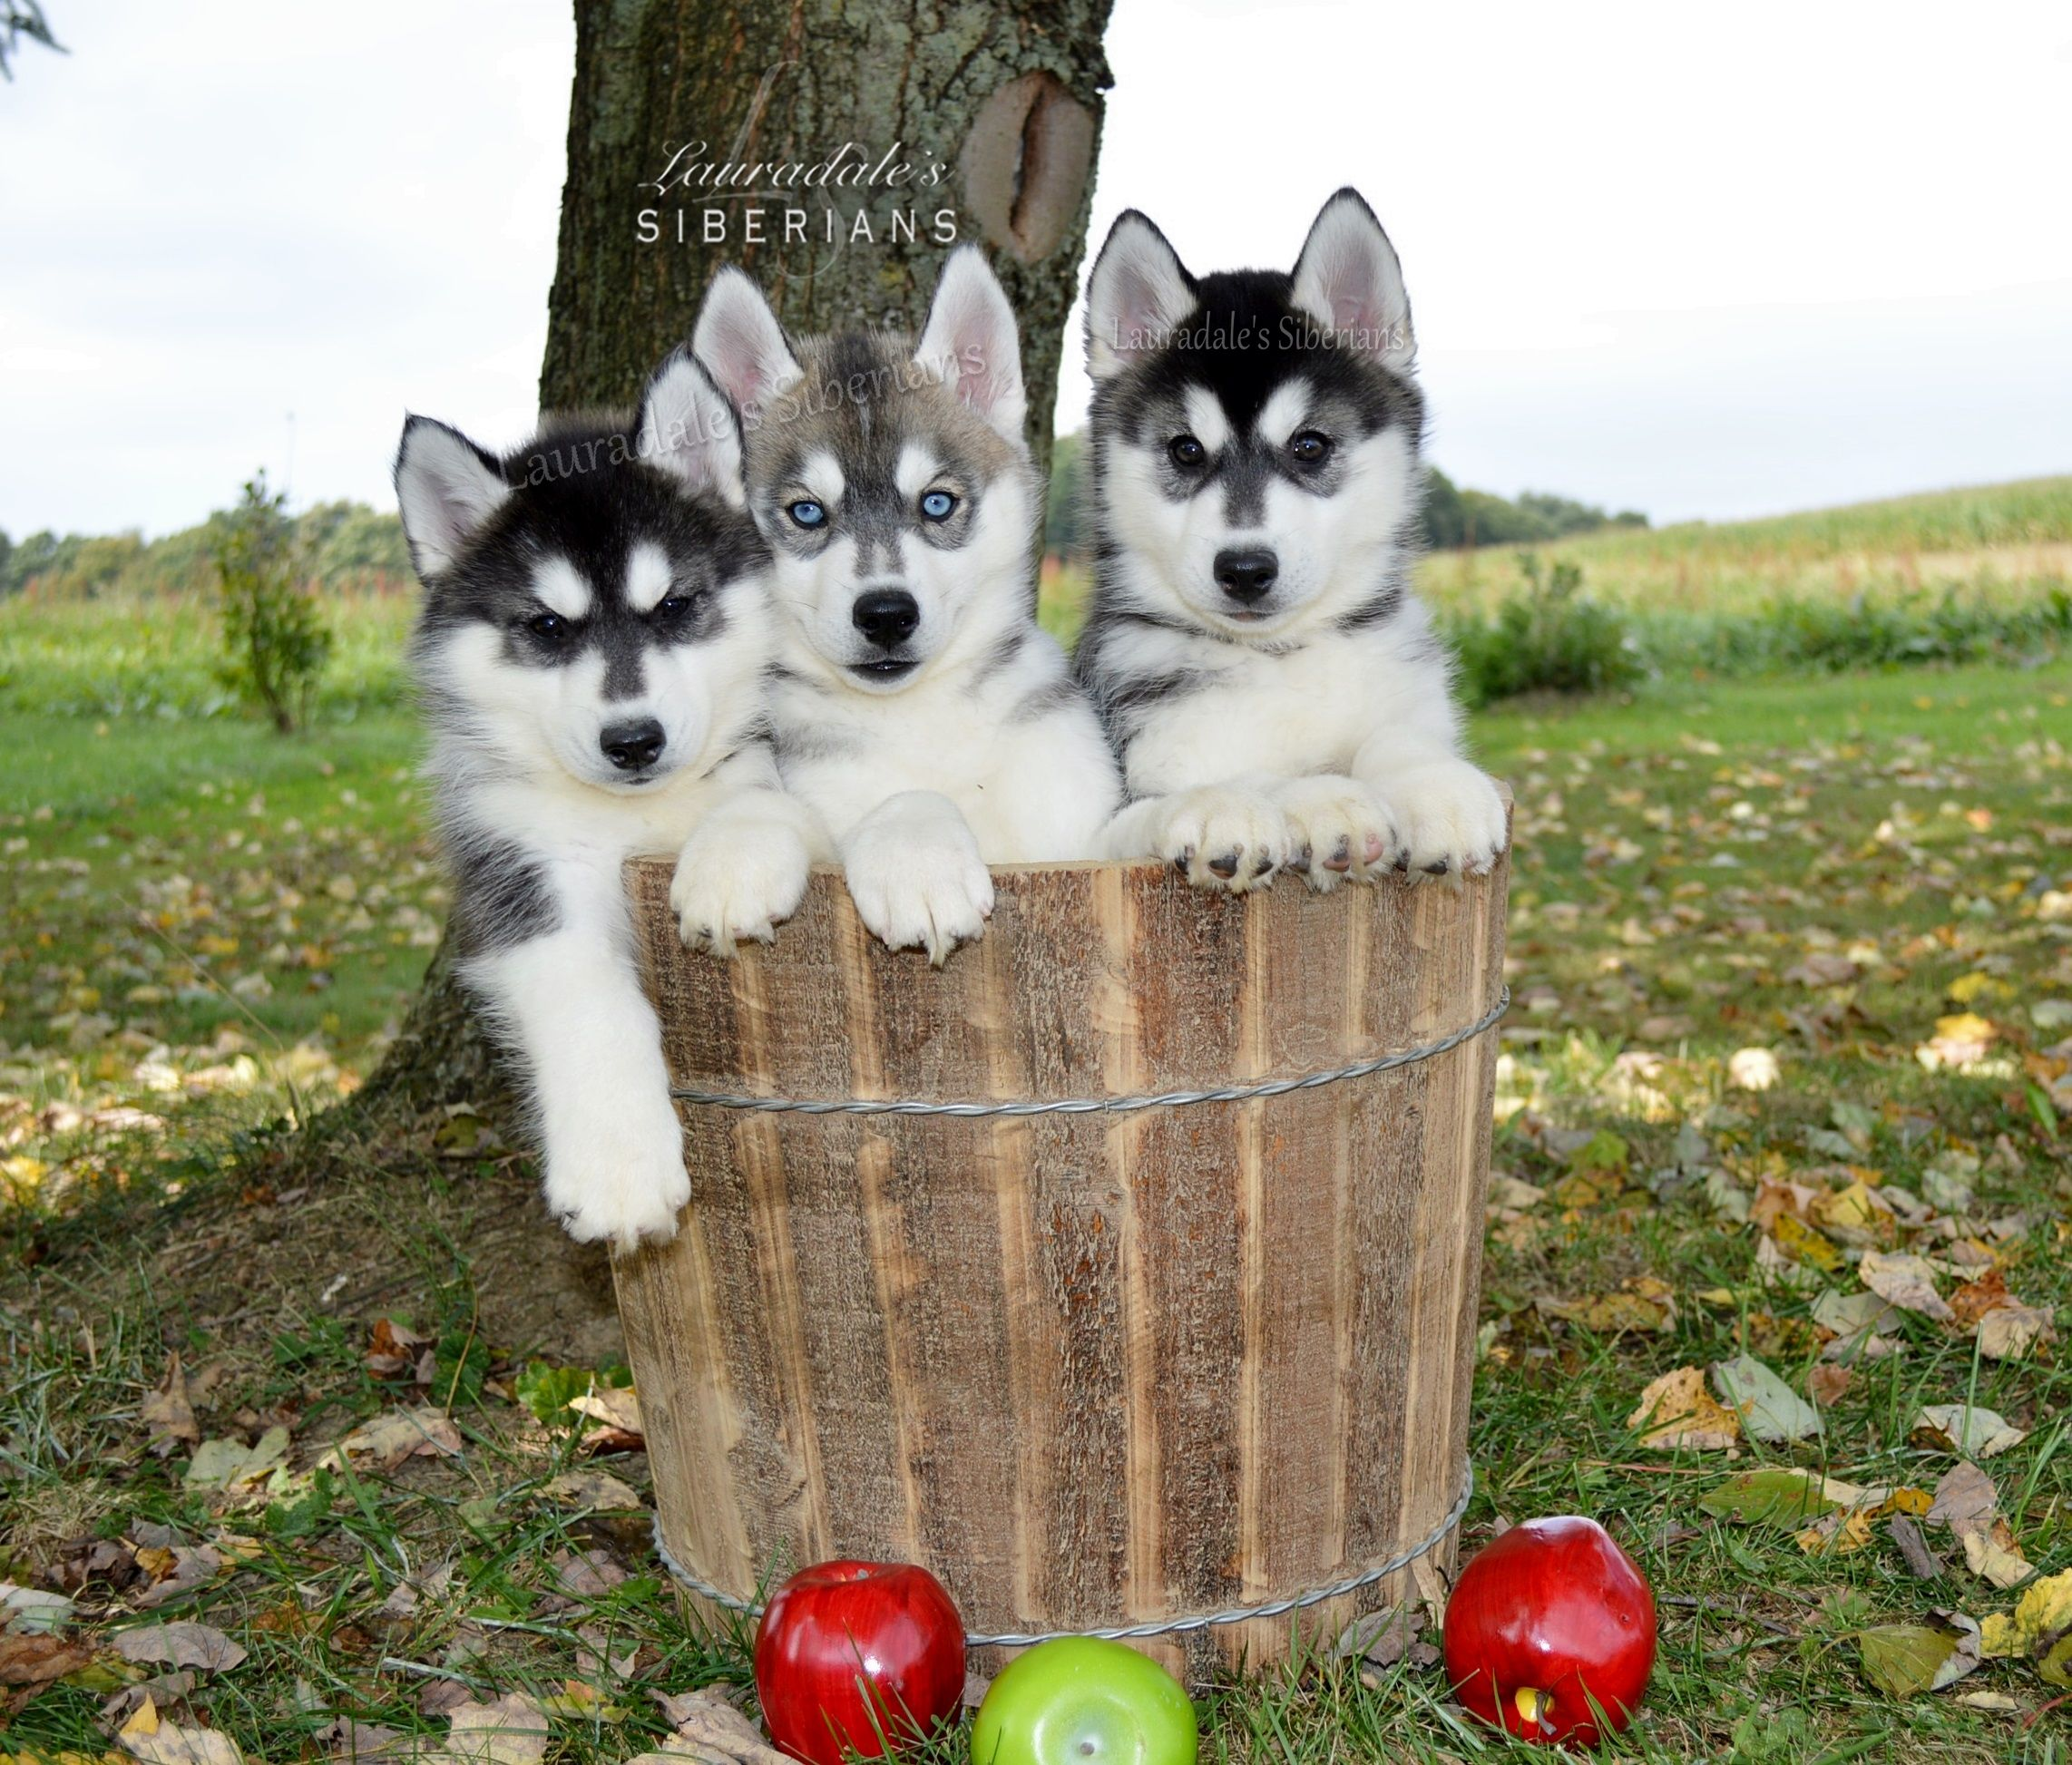 Lauradale S Siberian Husky Puppies For Adoption In Pennsylvania